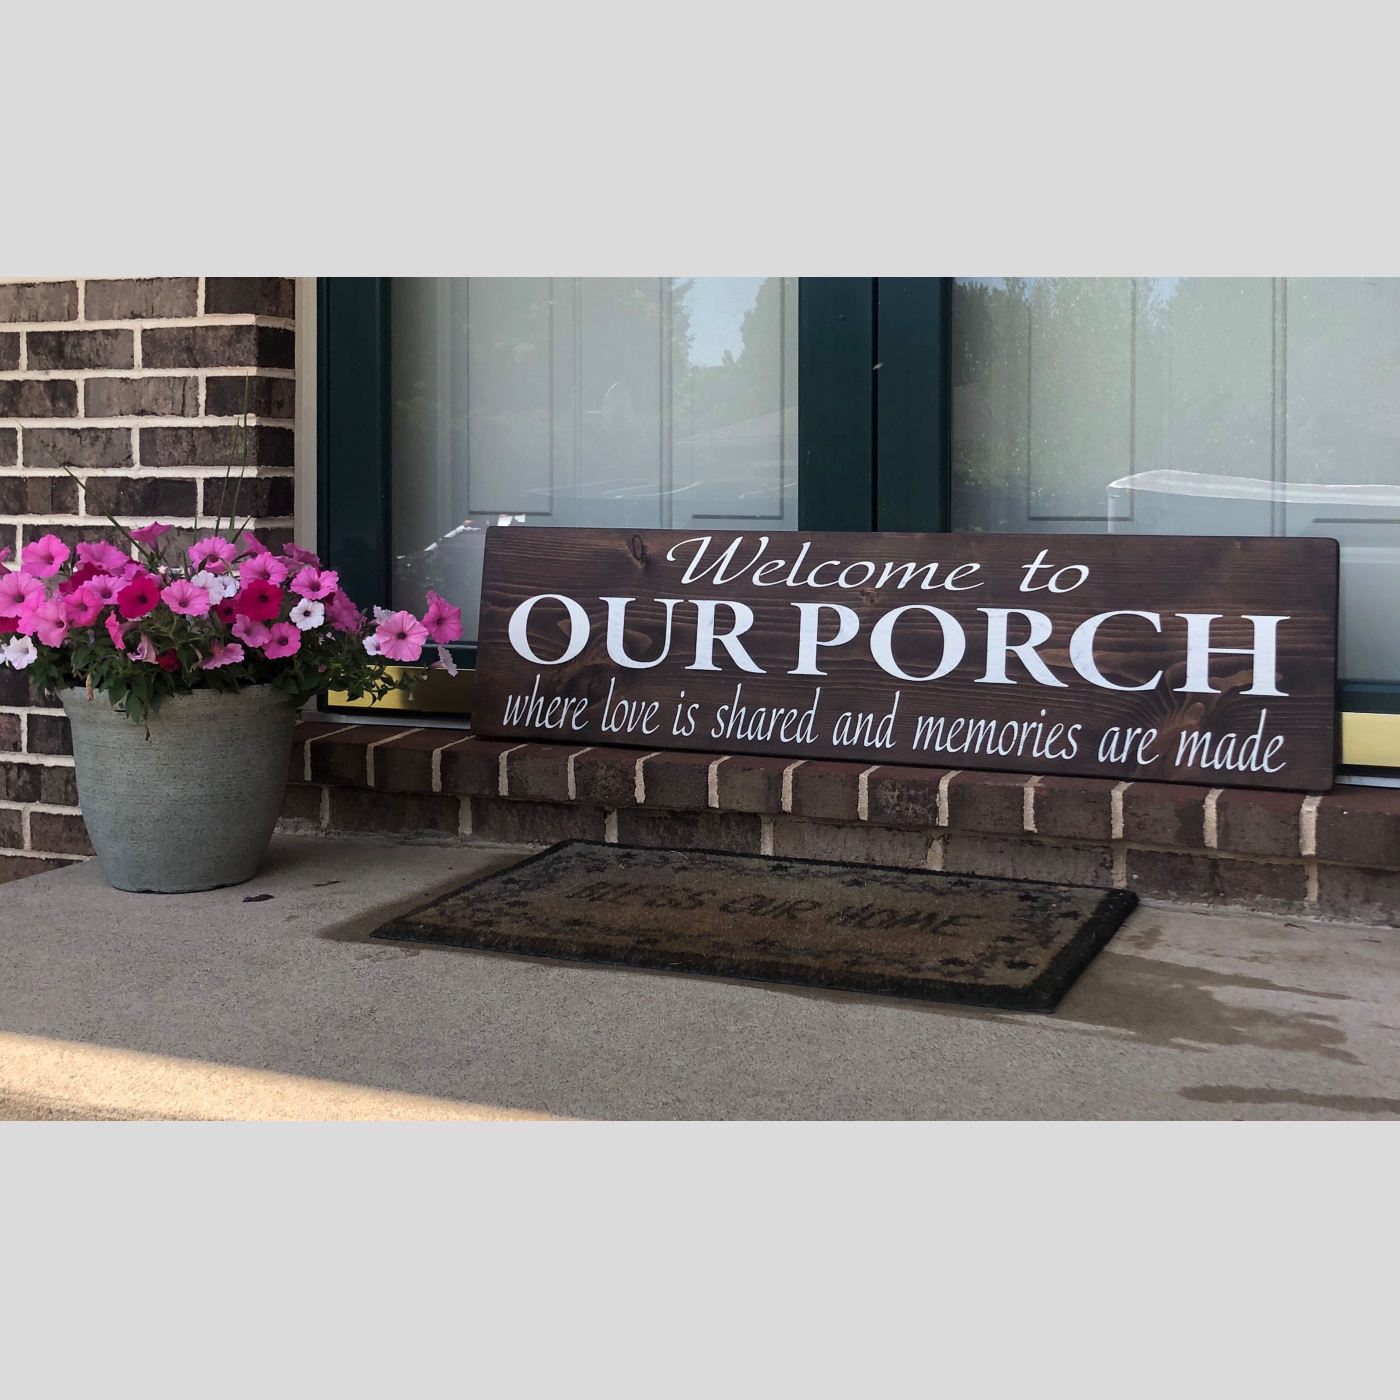 Welcome to Our Porch DIY Wood Sign Bethlehem PA